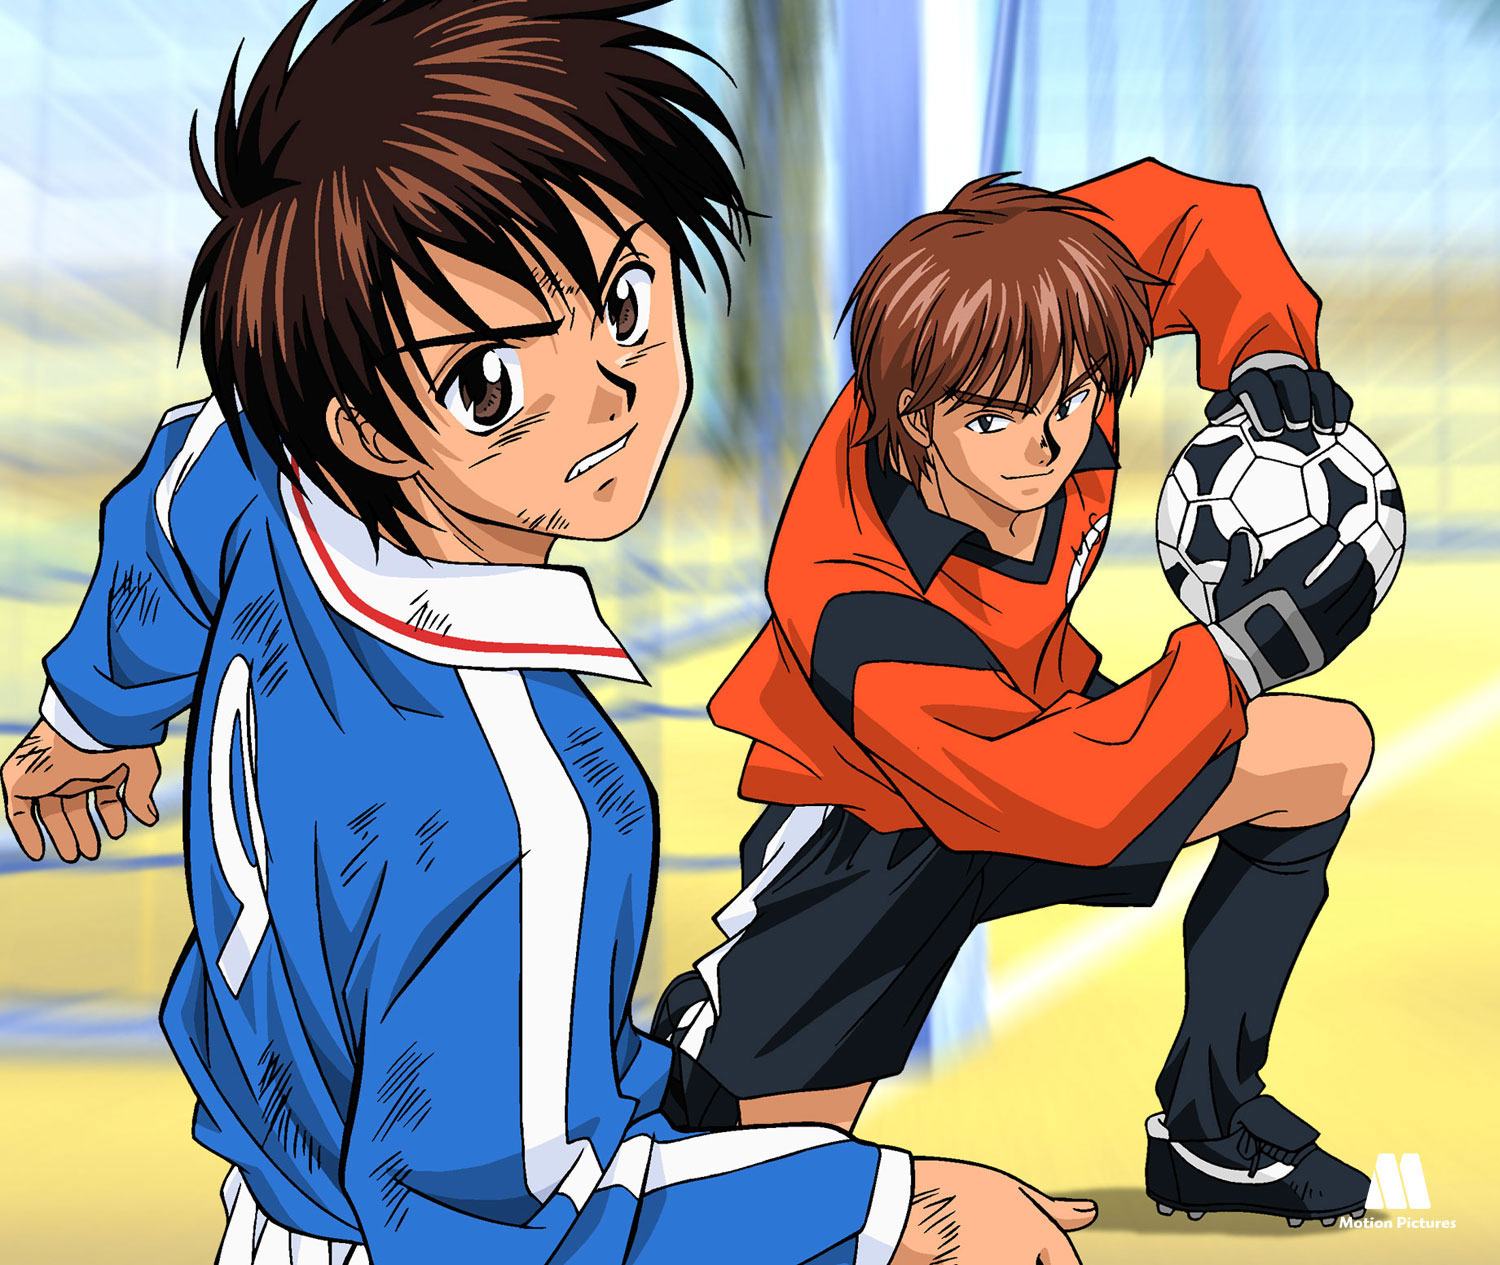 portero para, Dream Team, dibujos animados futbol, soccer anime japanese series